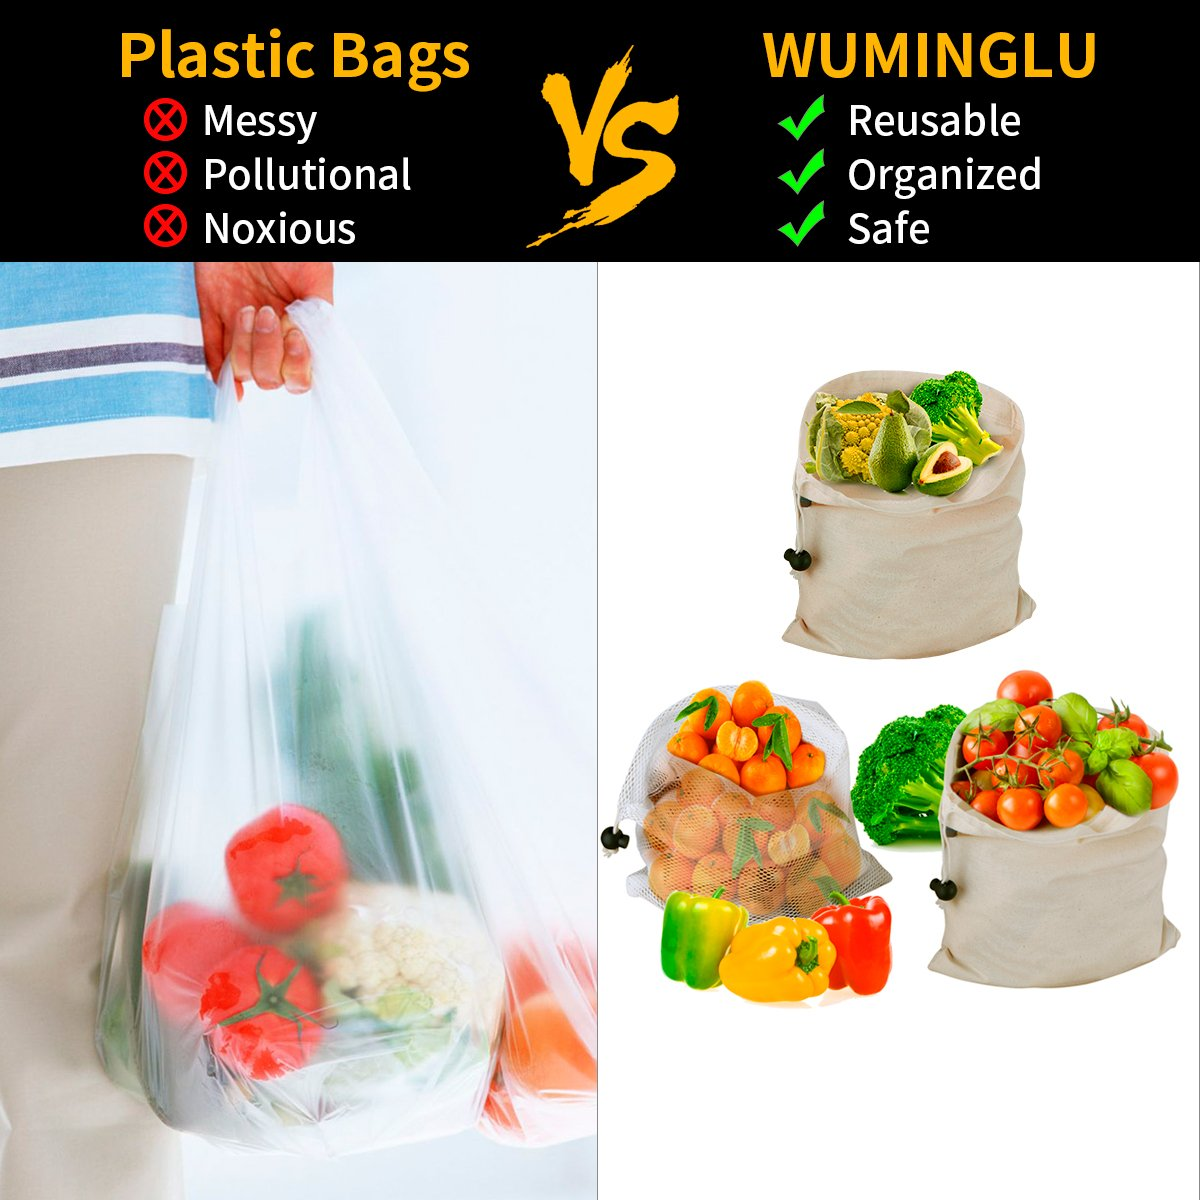 Reusable Produce Bags,WU-MINGLU Eco-Friendly Organic,Safe Freshness, 4 Sizes Muslin Cotton Drawstring & Premium Mesh Bag Set, Washable For Grocery Shopping,Storage and Vegetables(9Pack)